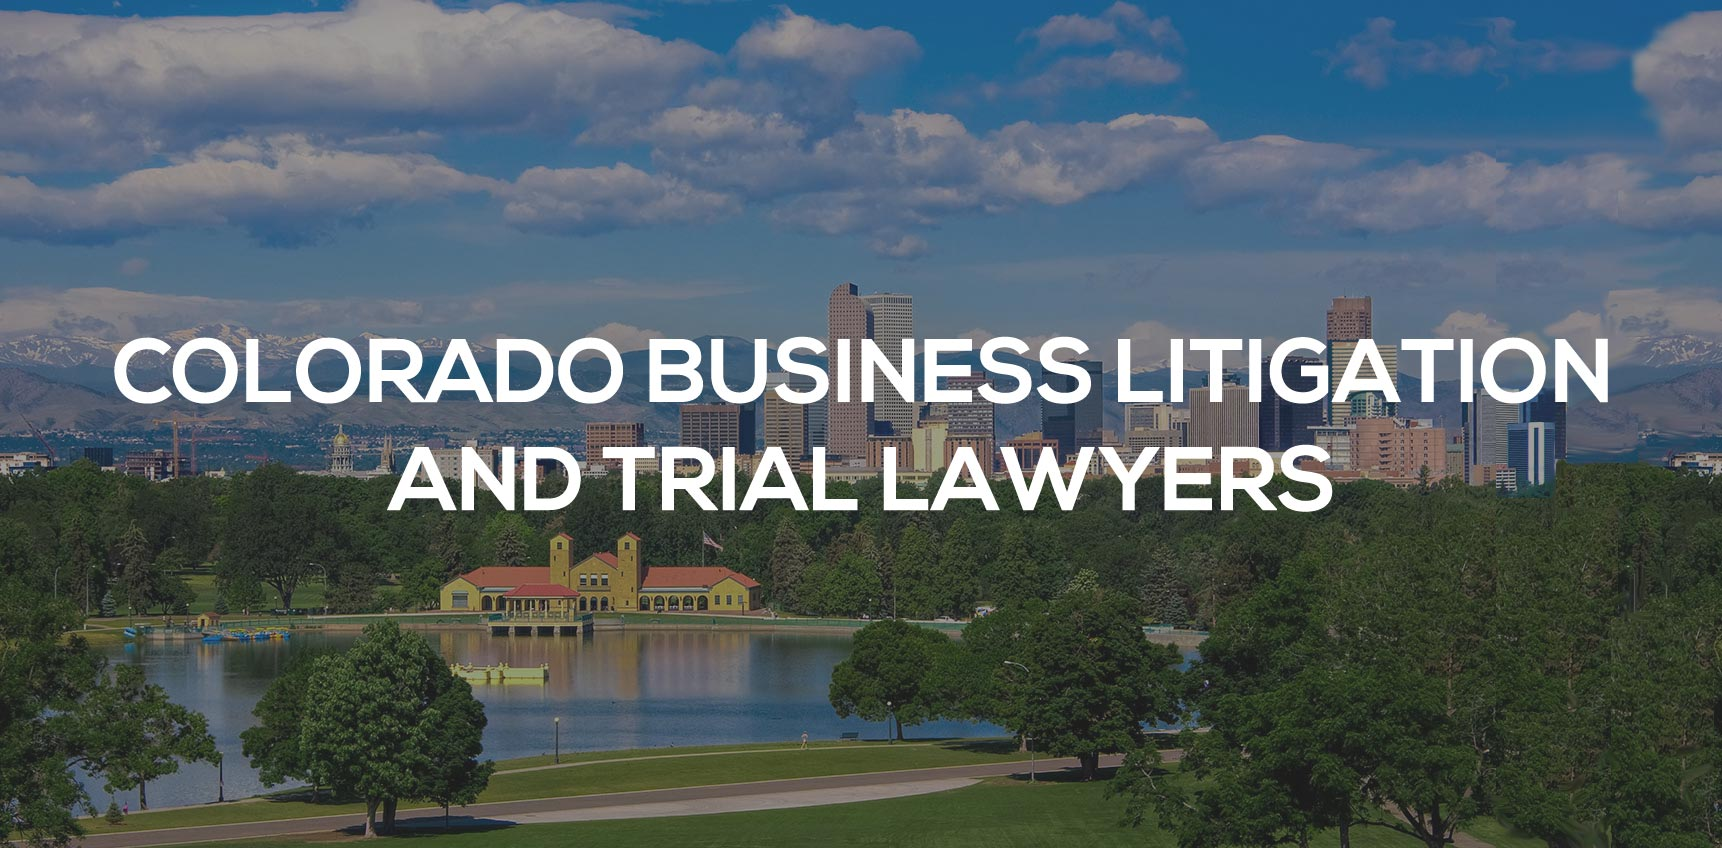 Colorado Business Litigation and Trial Lawyers